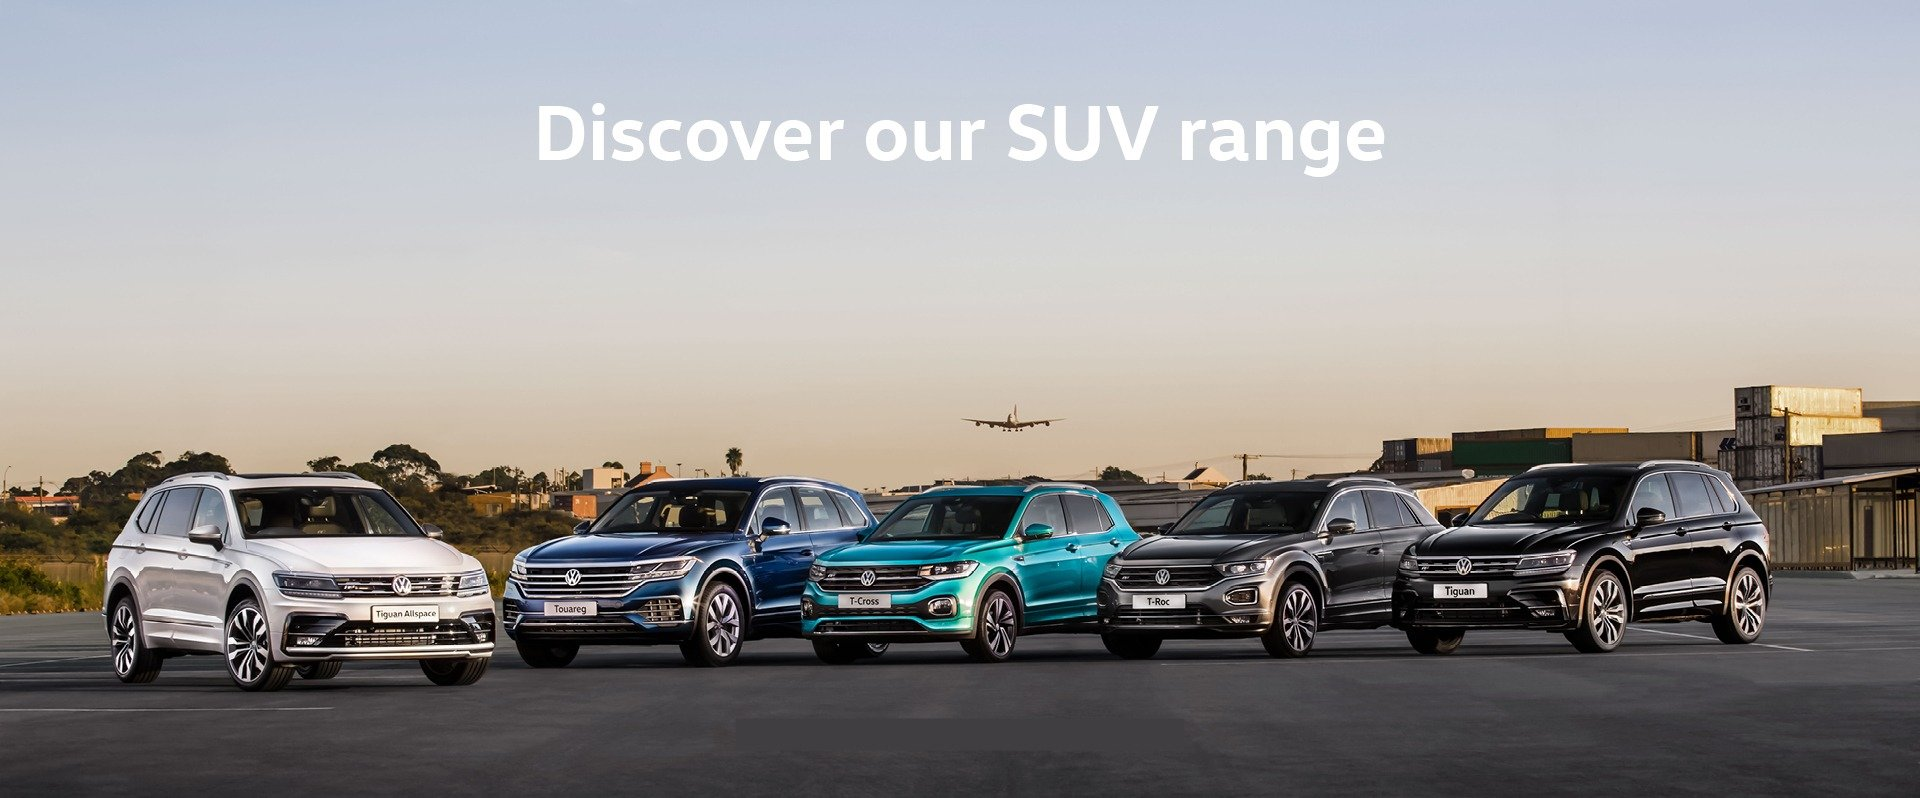 Range of Volkswagen SUVs sitting on an airport runway